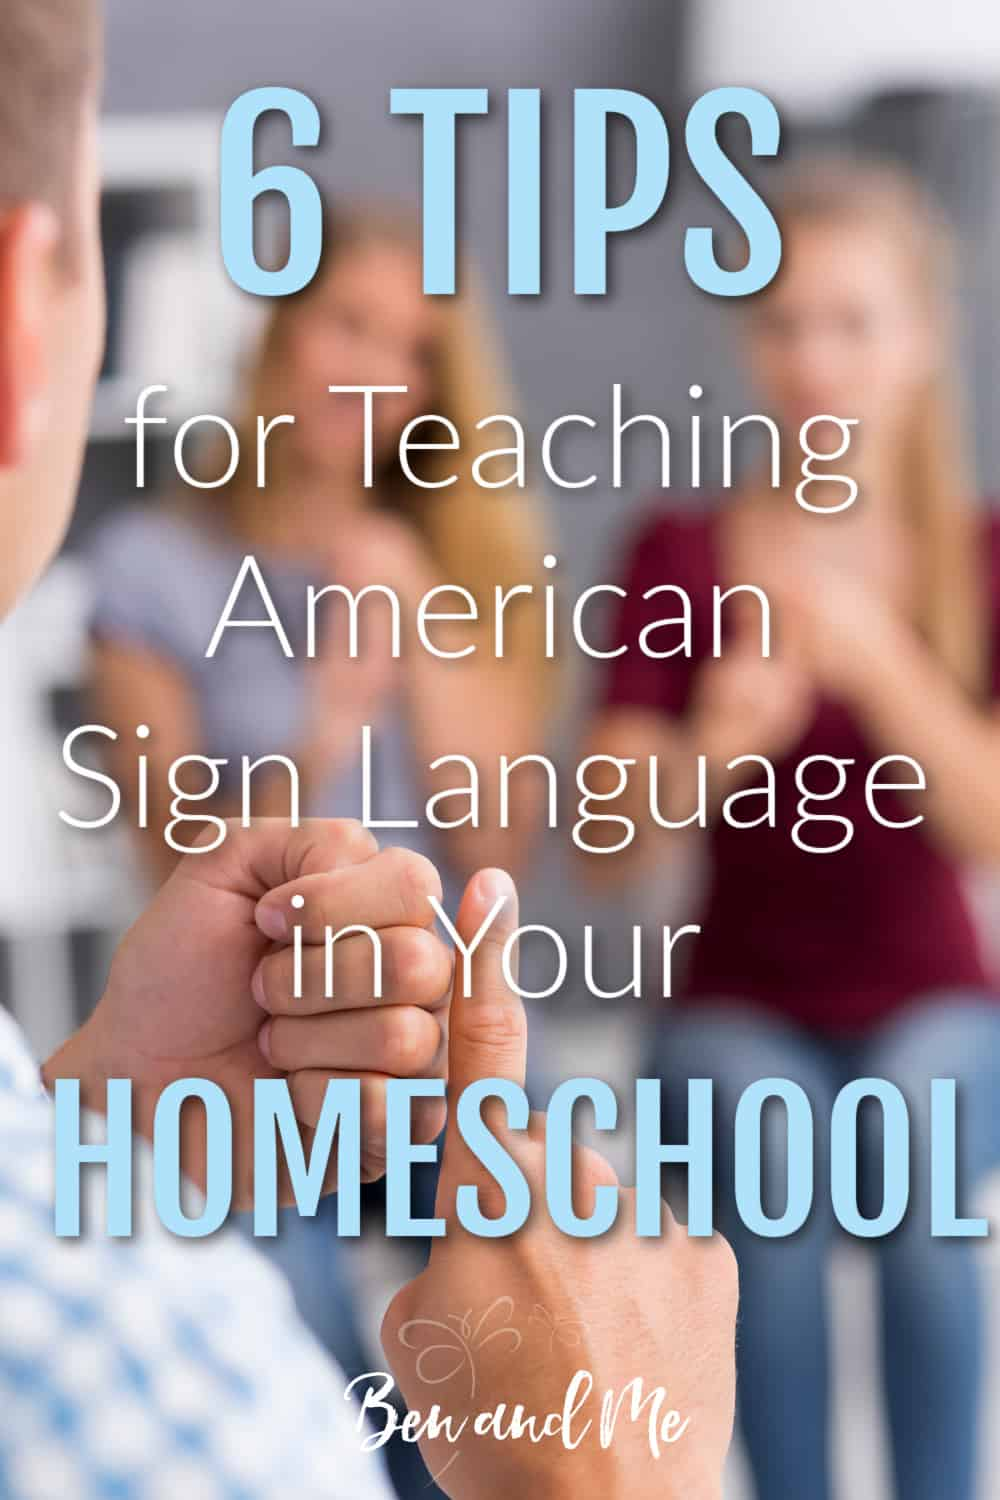 Here are 6 tips for teaching American Sign Language in your homeschool. #homeschool #learnasl #americansignlanguage